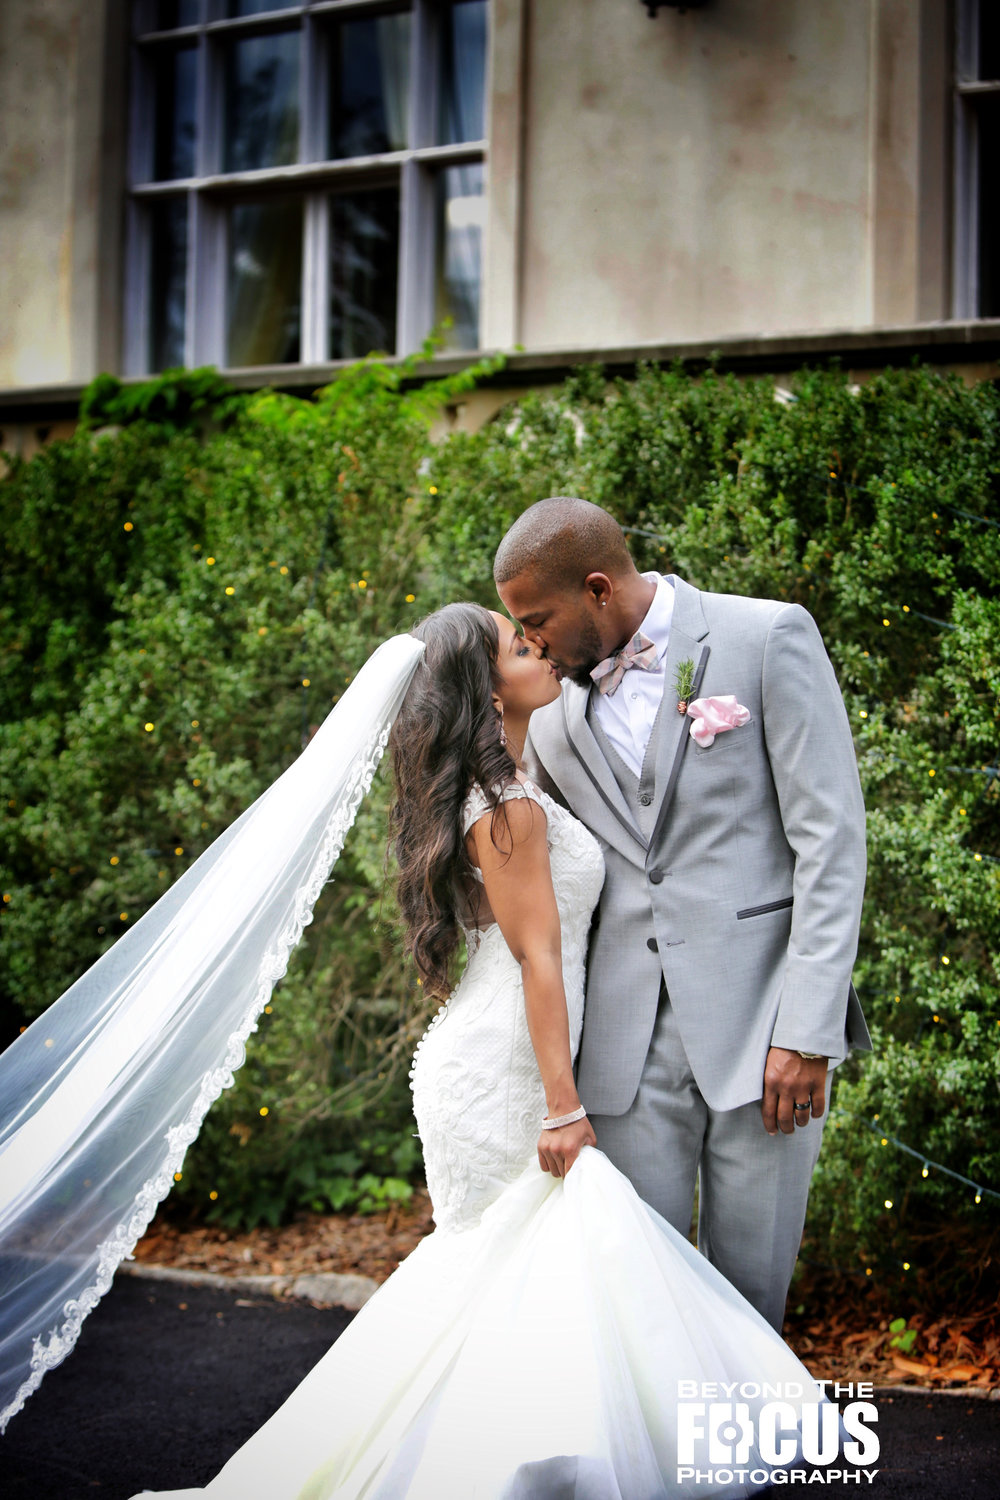 Christan_Imani_WeddingPartyFamily_W_54.jpg